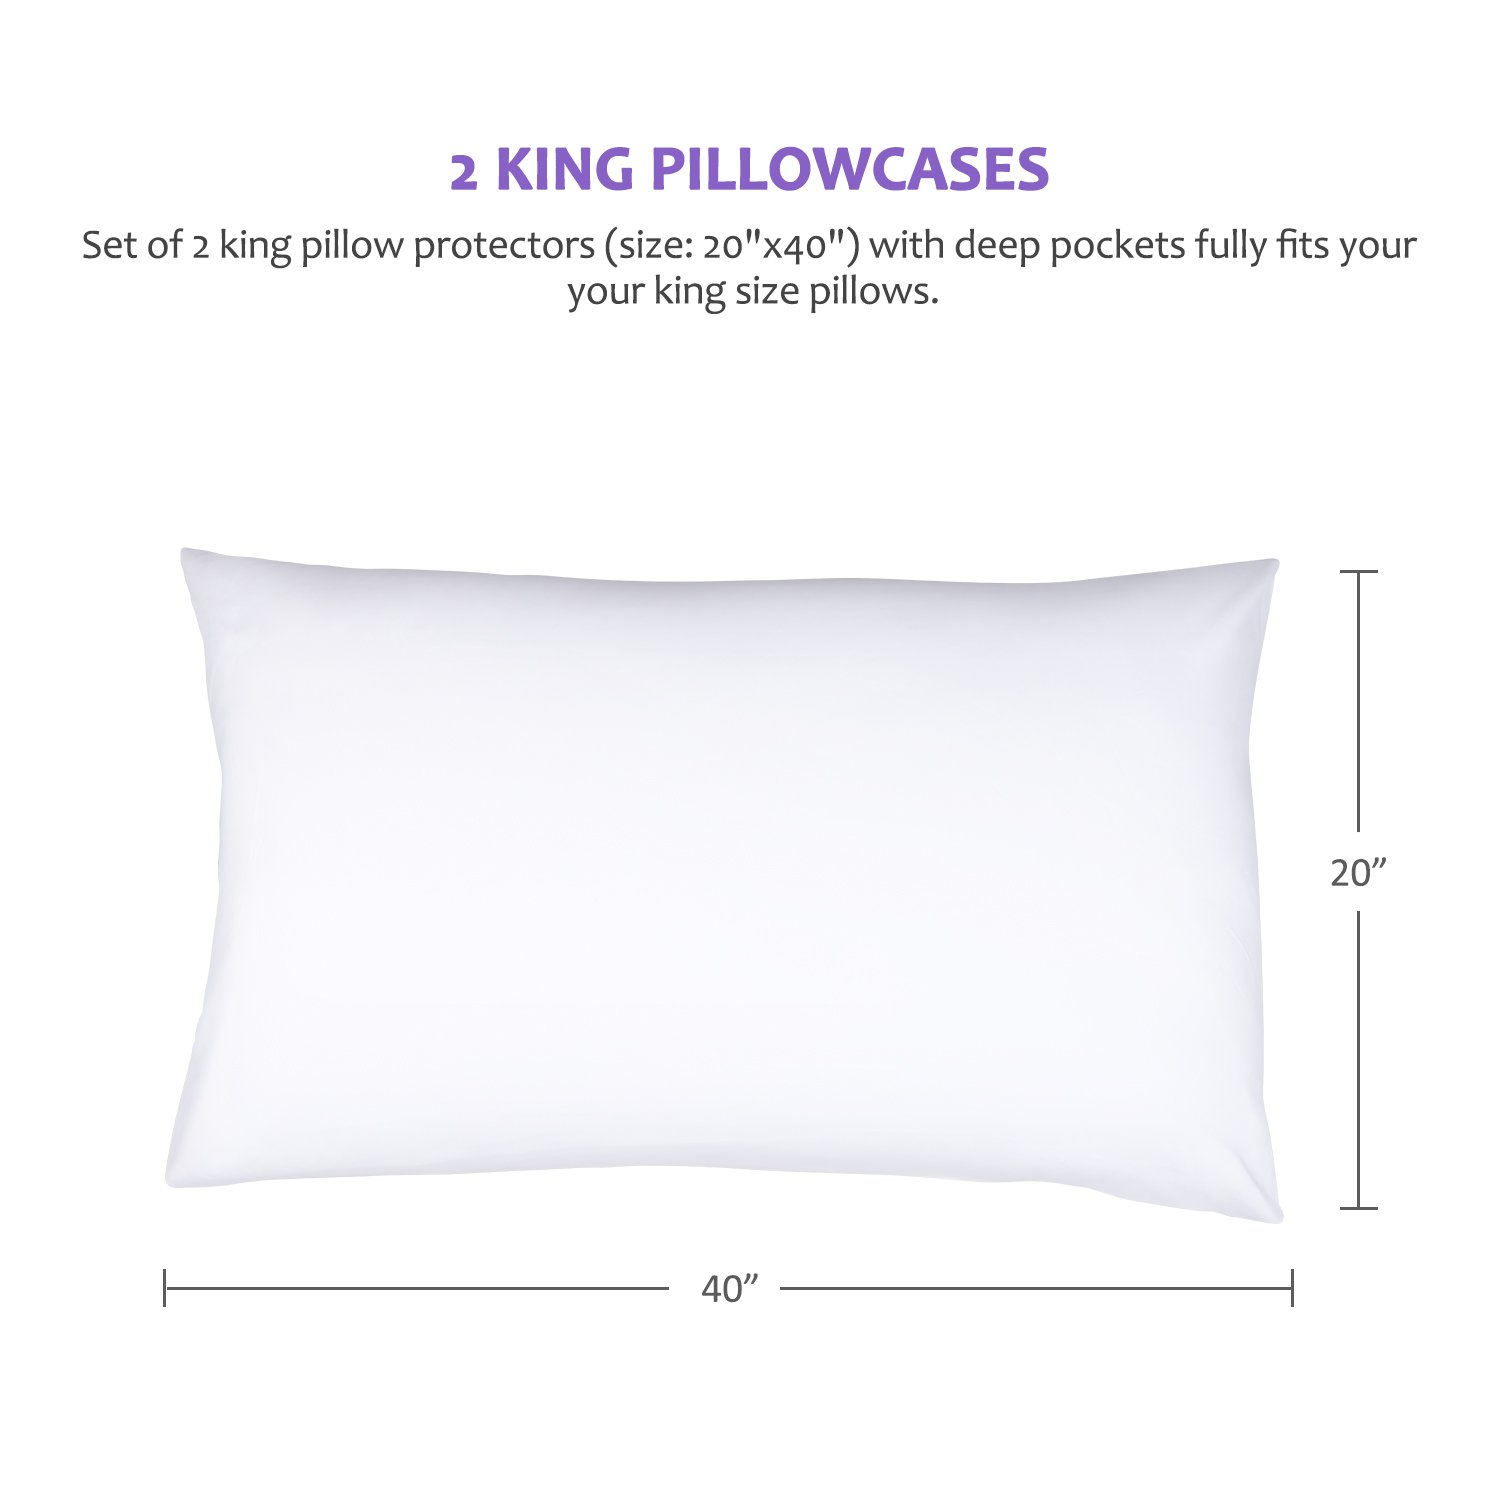 king pillows arrangement for bed queen pin judithtaylordesigns pillow com sizing size on and